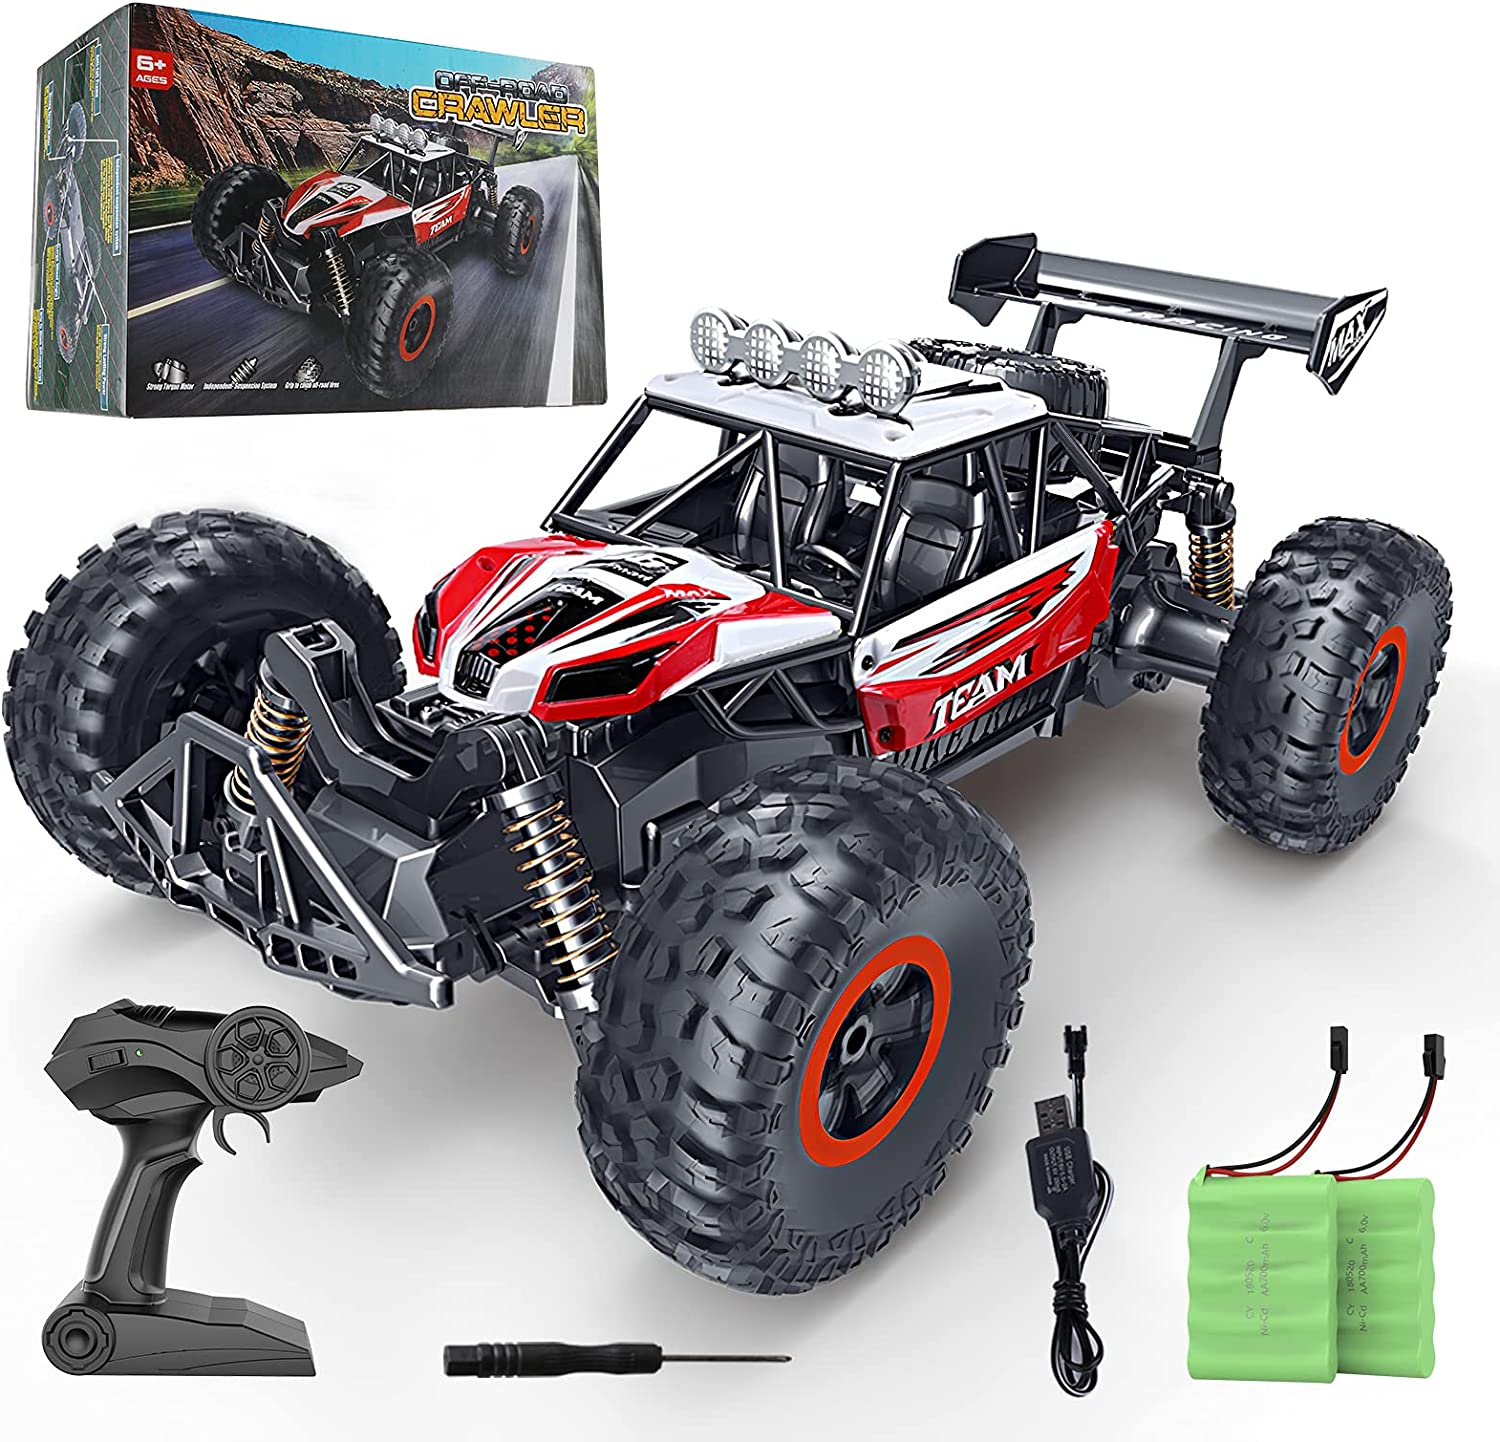 Large-scale sale RC Car SPESXFUN 2021 Upgraded 1:14 High Remote Scale Speed Cont Max 83% OFF